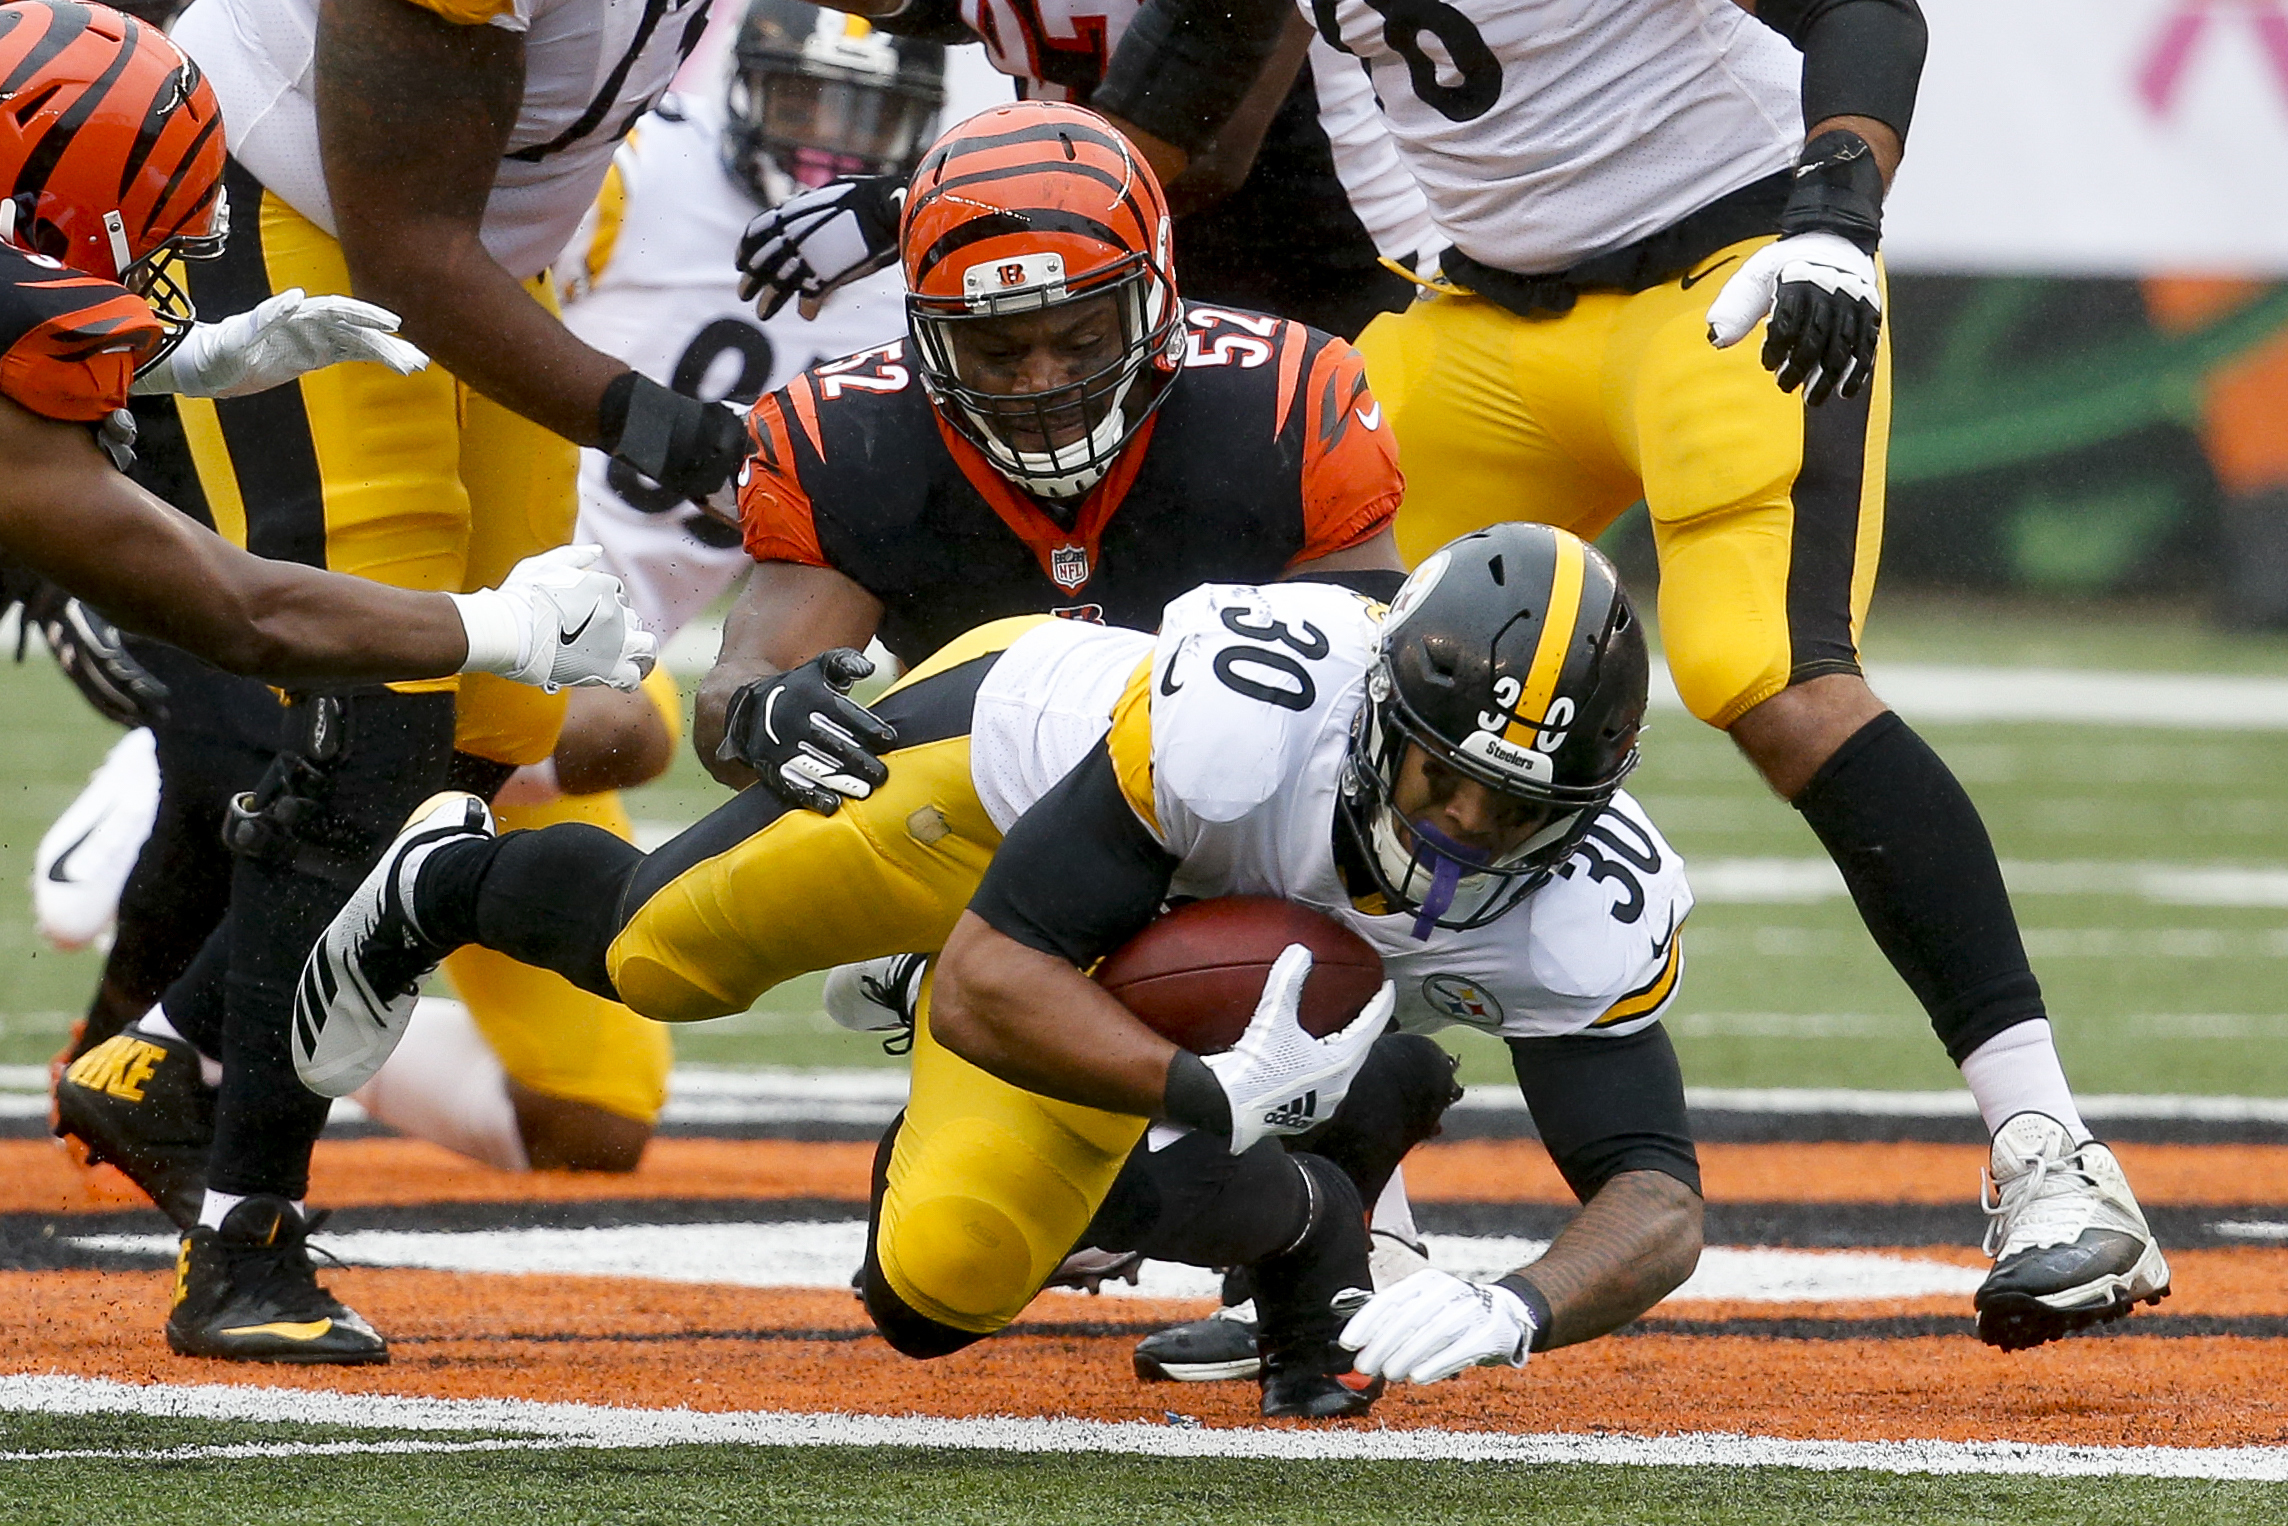 Pittsburgh Steelers running back James Conner (30) dives for extra yards against Cincinnati Bengals linebacker Preston Brown (52) in the first half of an NFL football game, Sunday, Oct. 14, 2018, in Cincinnati. (AP Photo/Frank Victores)